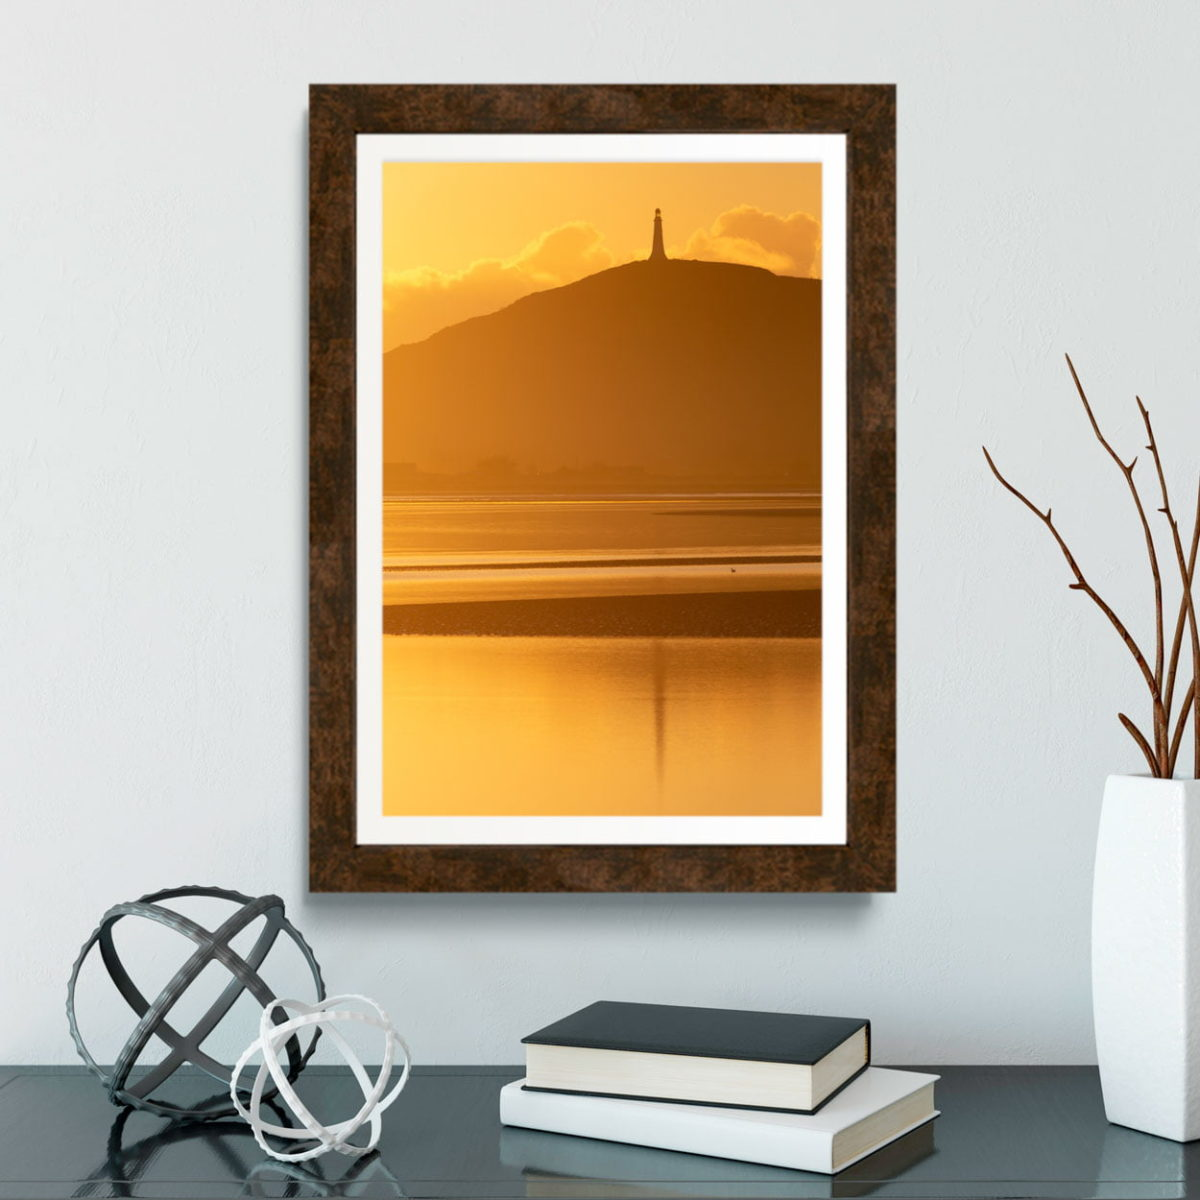 Hoad Monument In The Sunset Reflections Print2